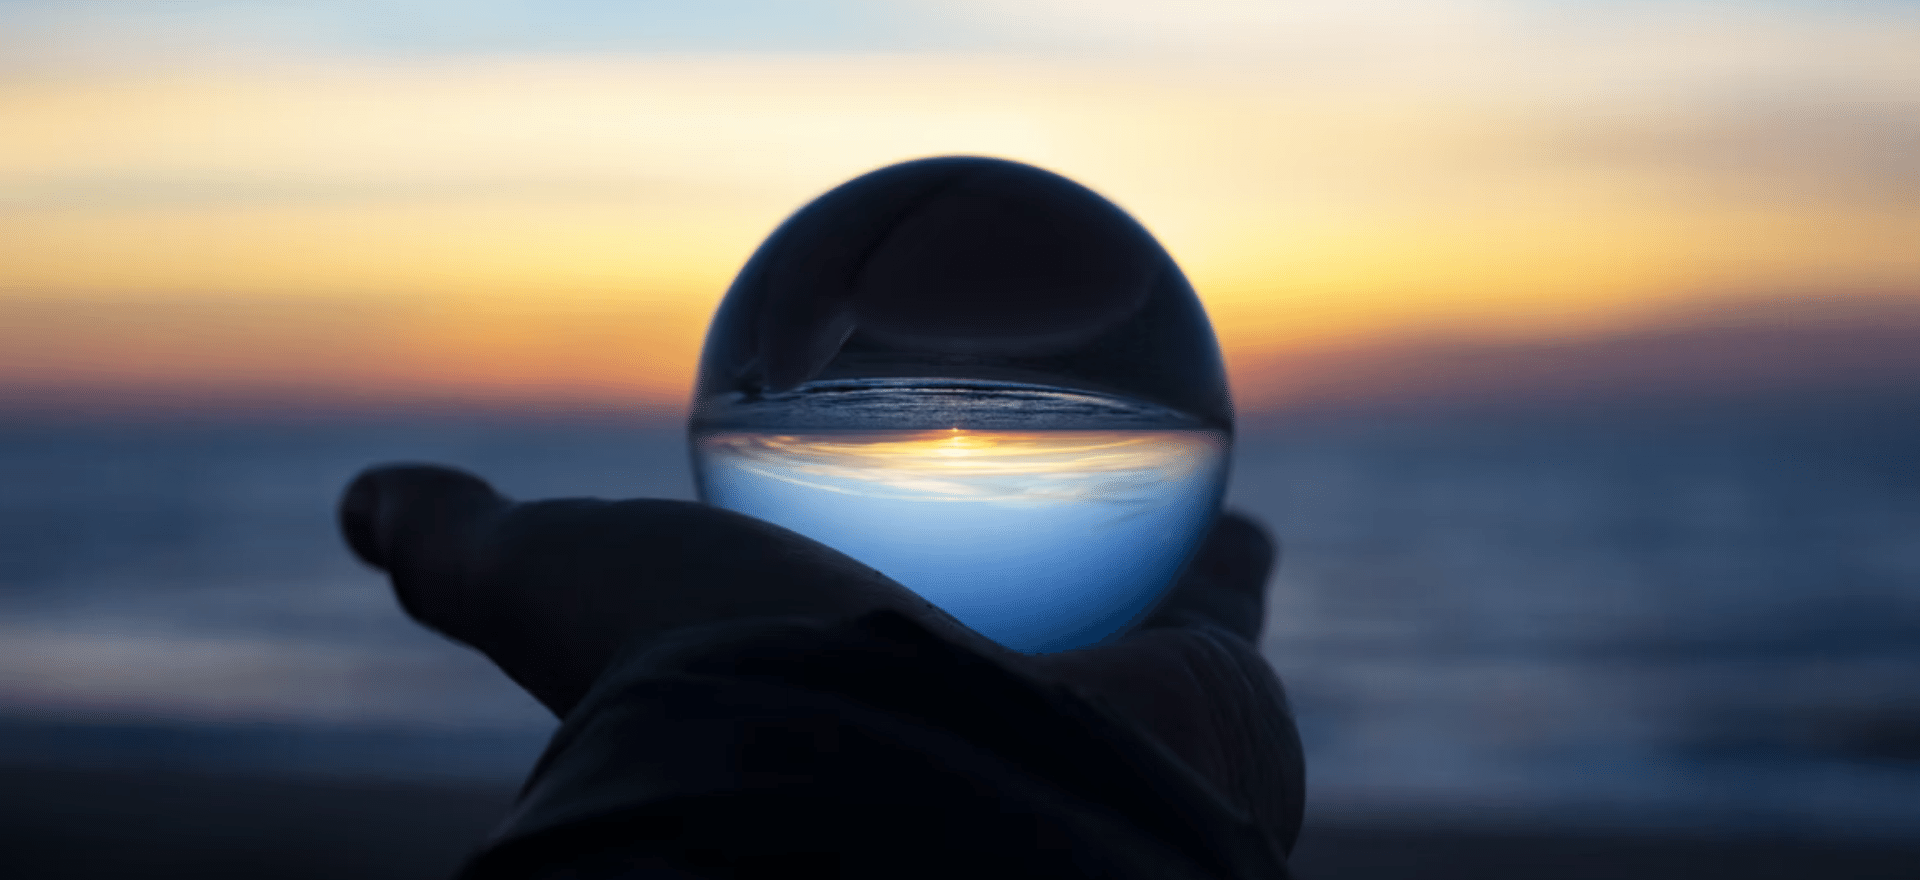 Header image of The Lookout All News Online Events and Virtual Events on Revisiting our 2021 Event Predictions / 2021 Veranstaltung Prognosen